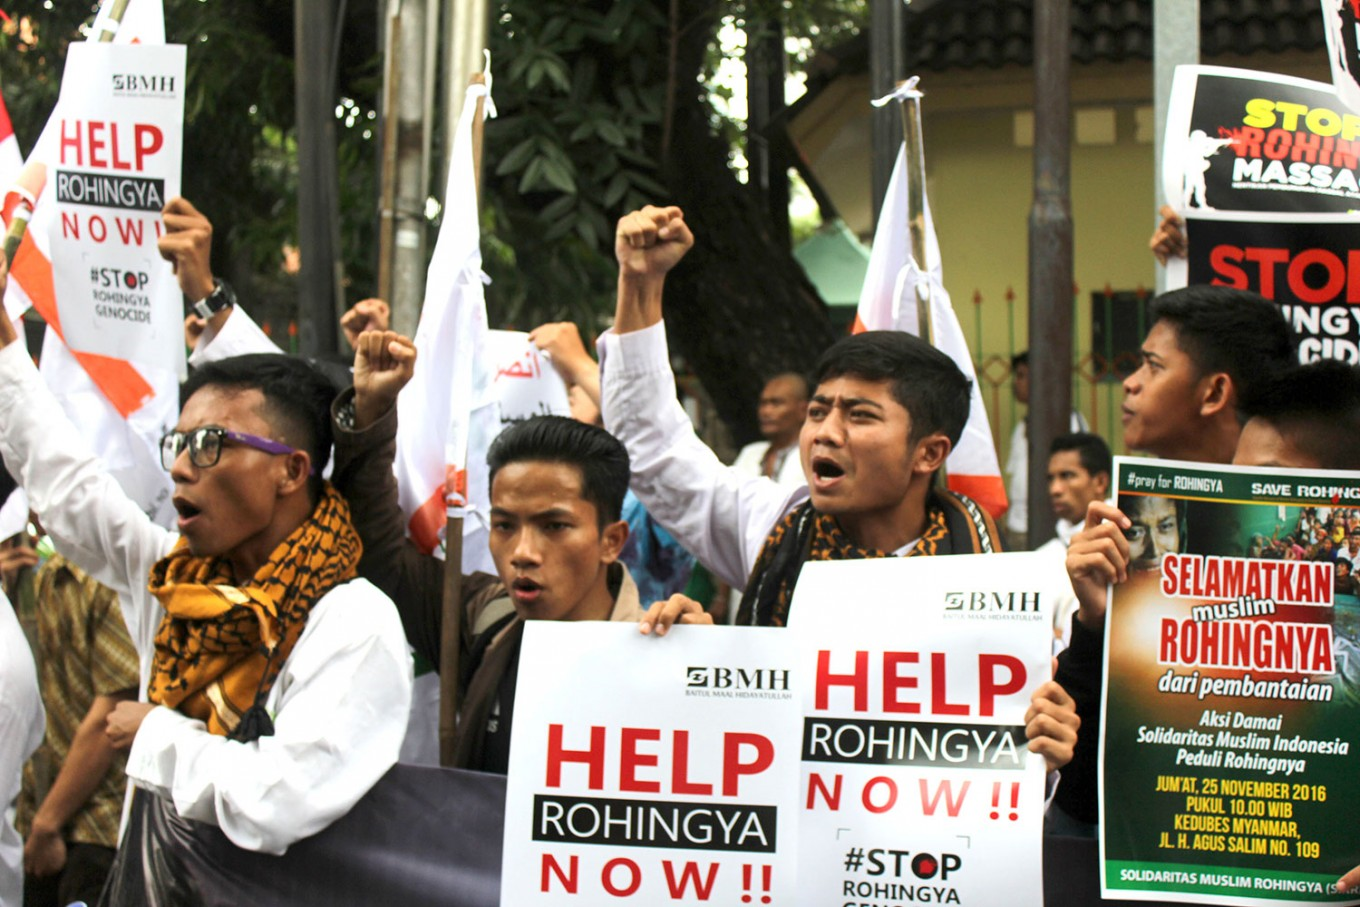 Rohingya and responsibility